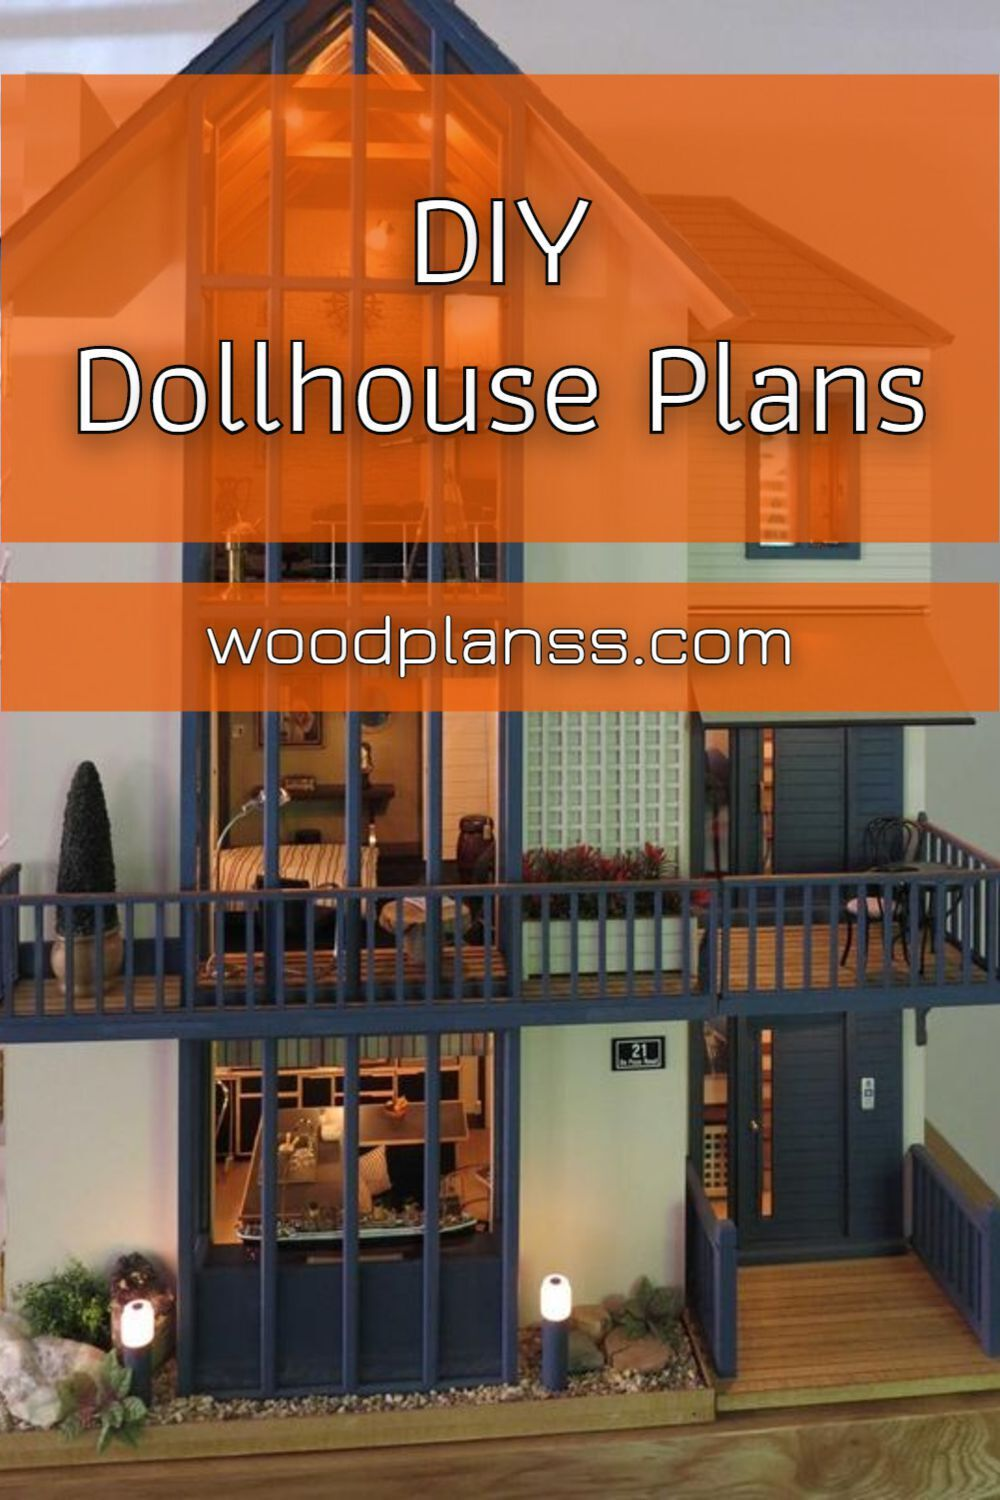 Diy Dollhouse Plans in 2020 | Contemporary woodworking ...